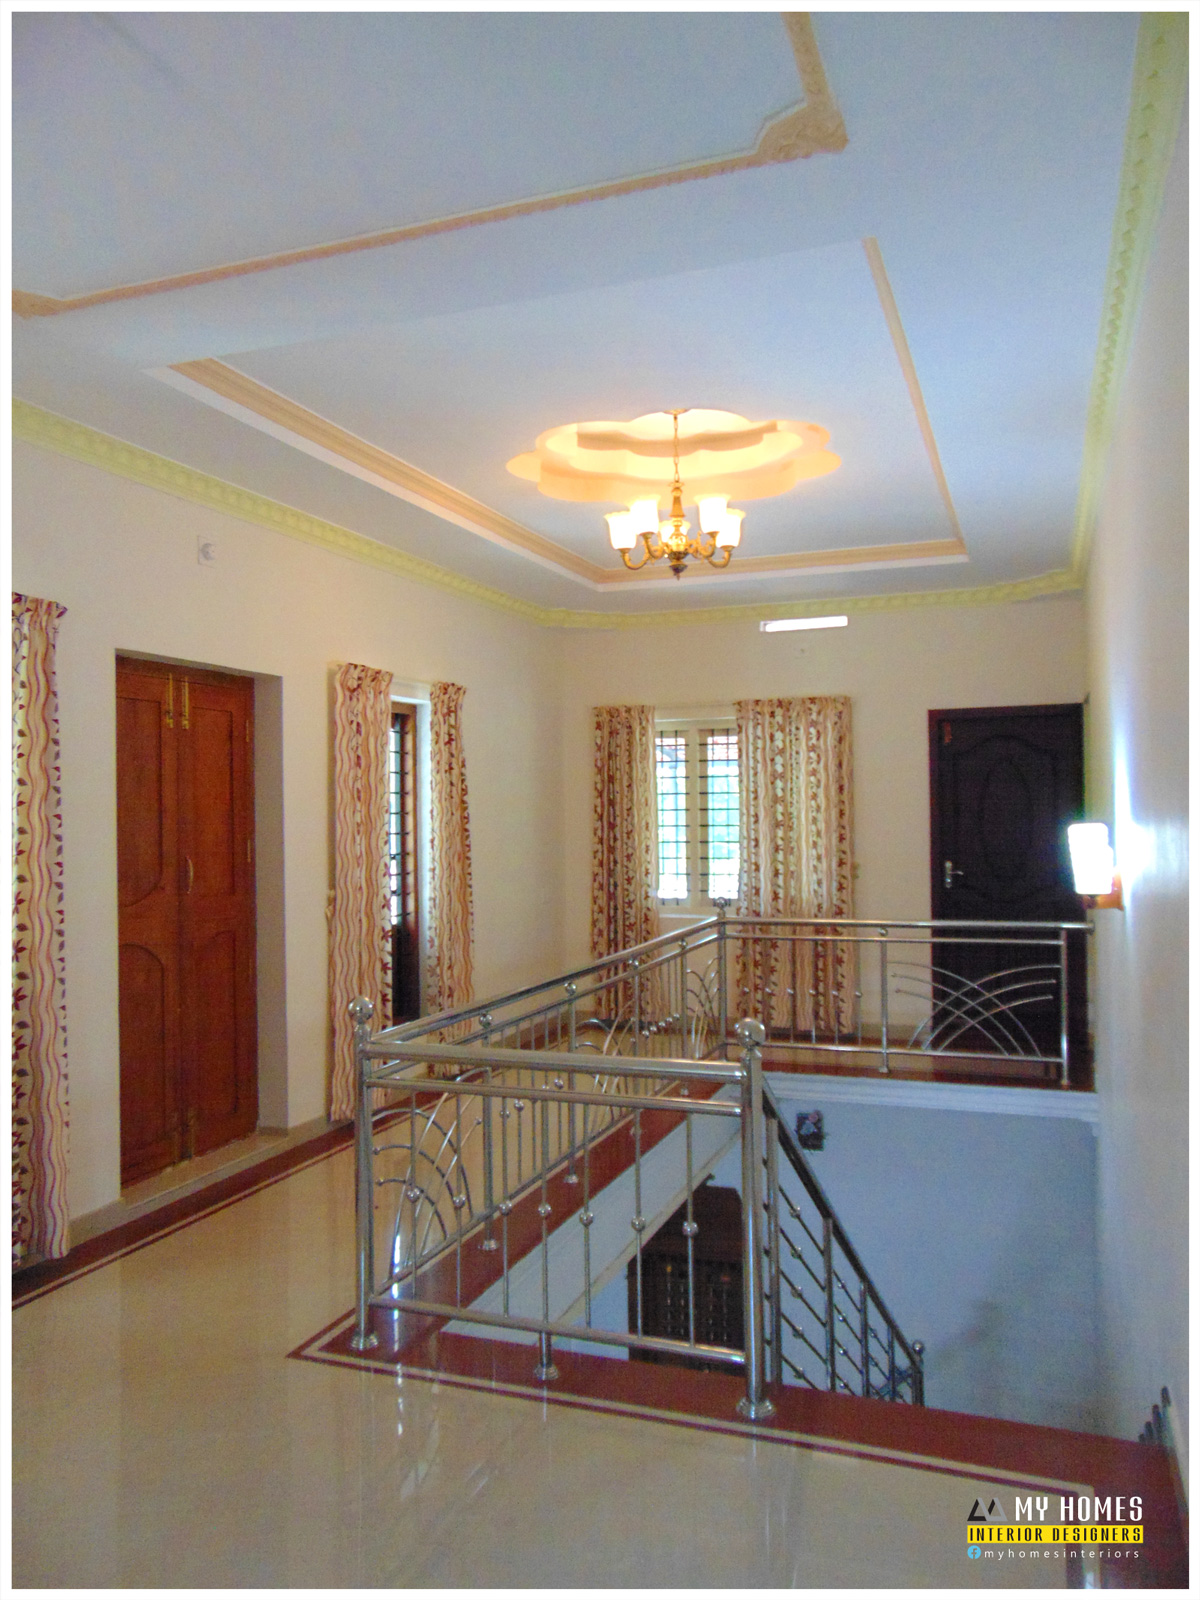 Kerala interior design ideas from designing company thrissur - Room interior designs ...